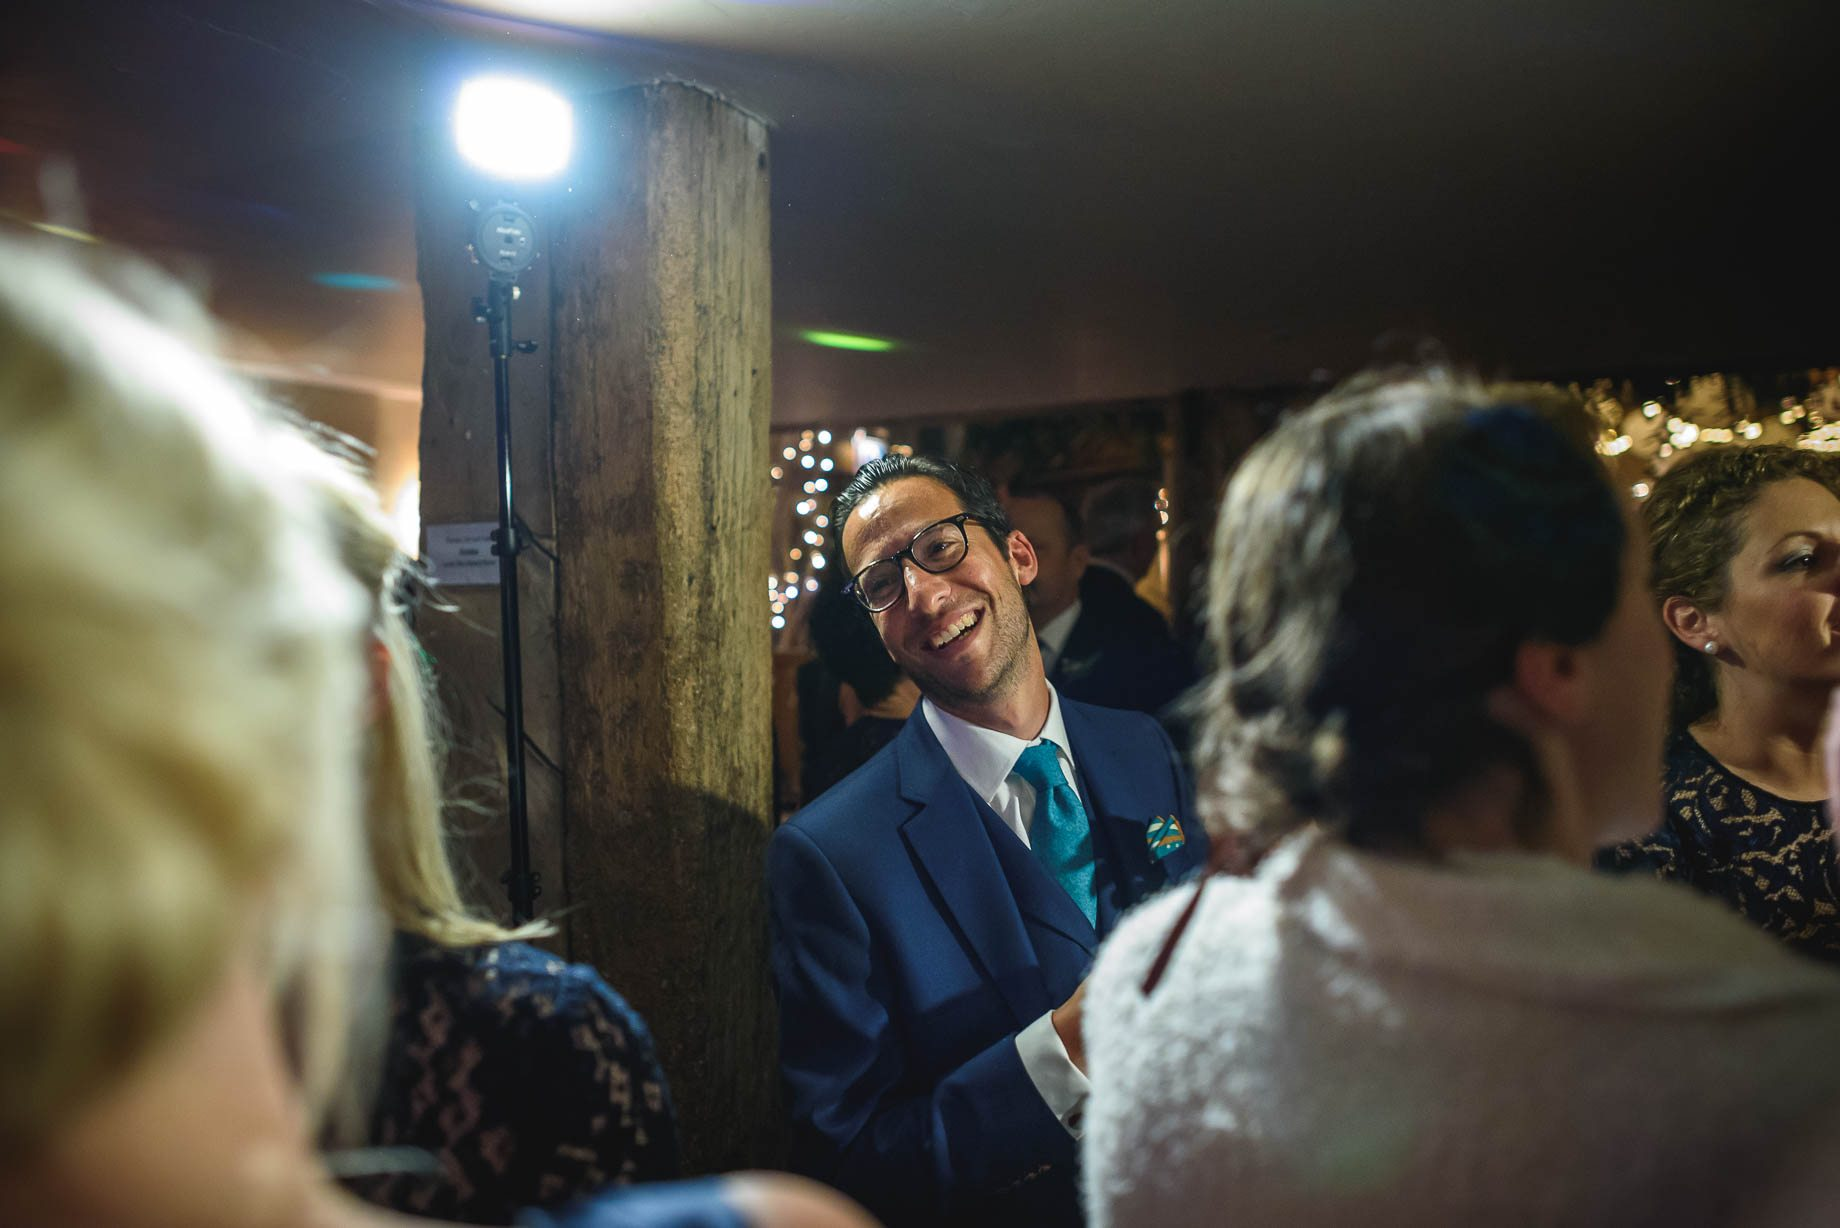 Bury Court Barn wedding photography - Ashley and Henry by Guy Collier Photography (183 of 188)